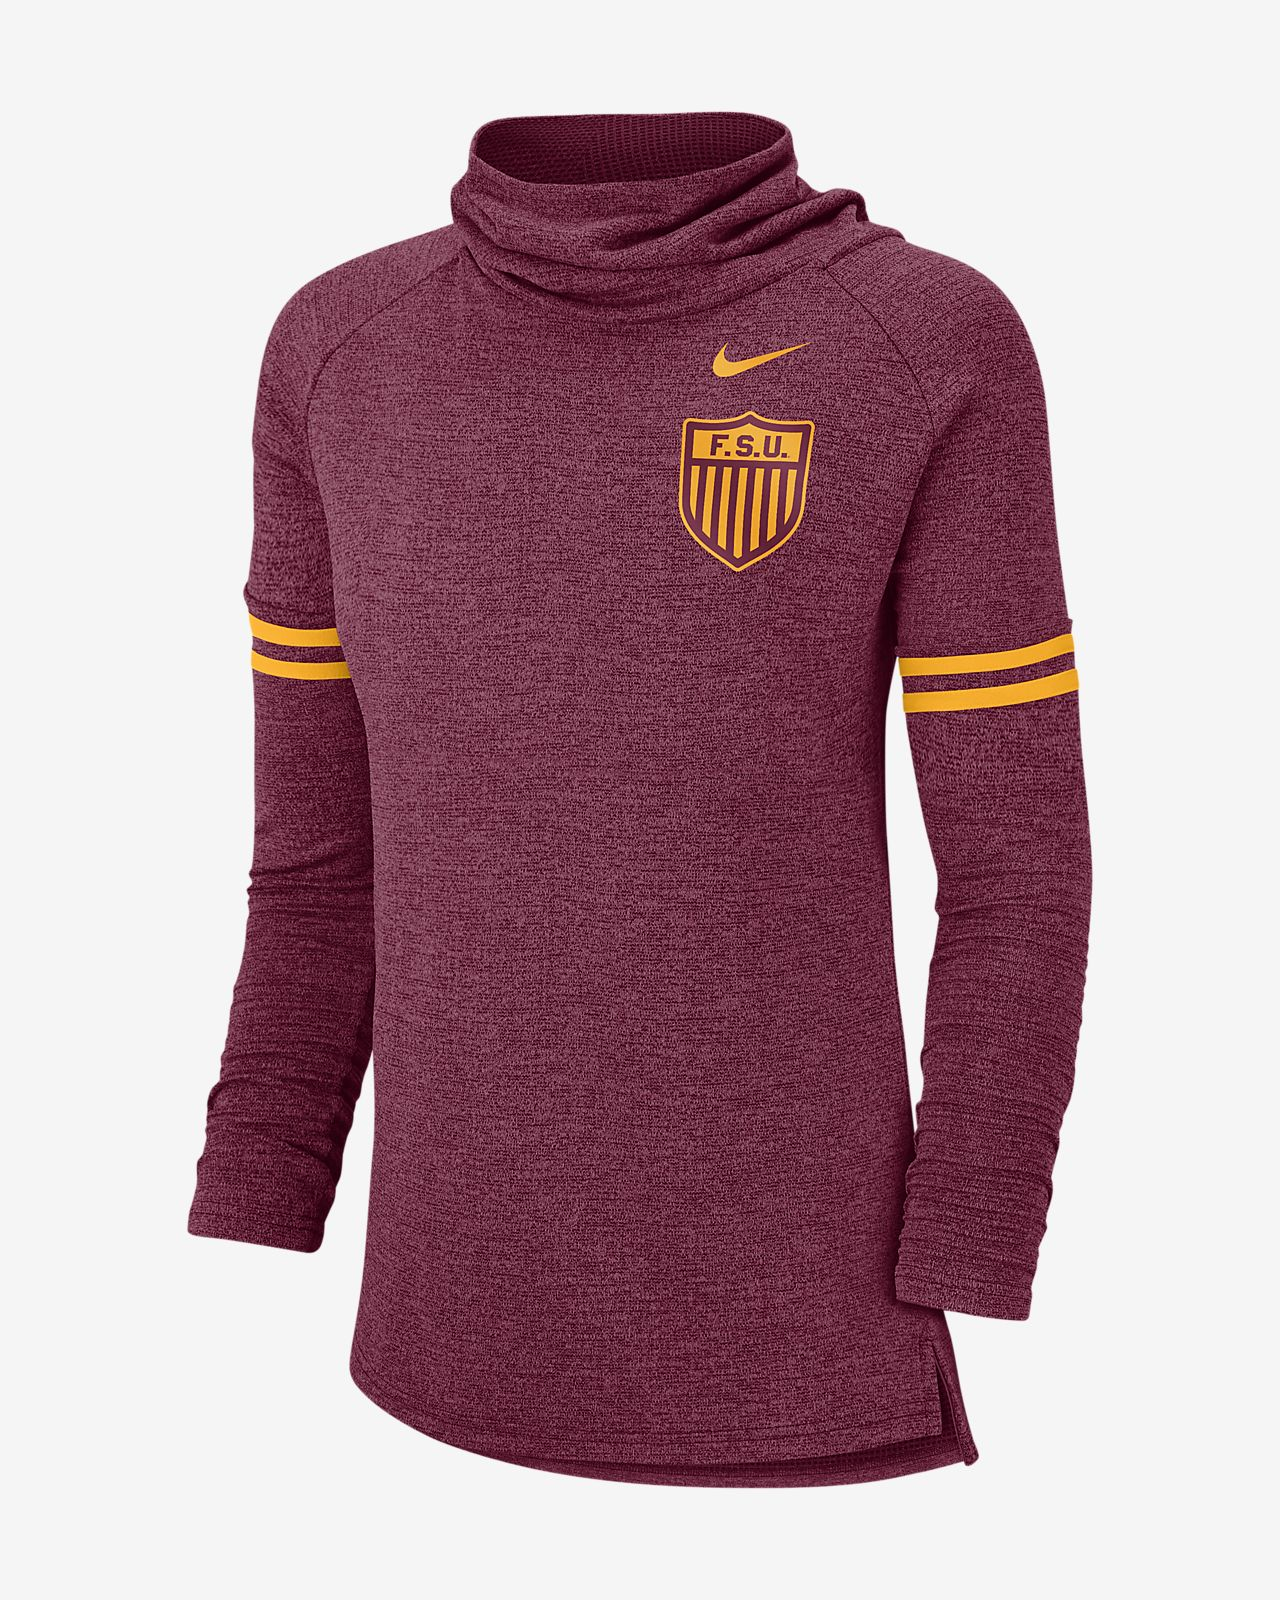 Nike College (Florida State) Women's Long Sleeve Top